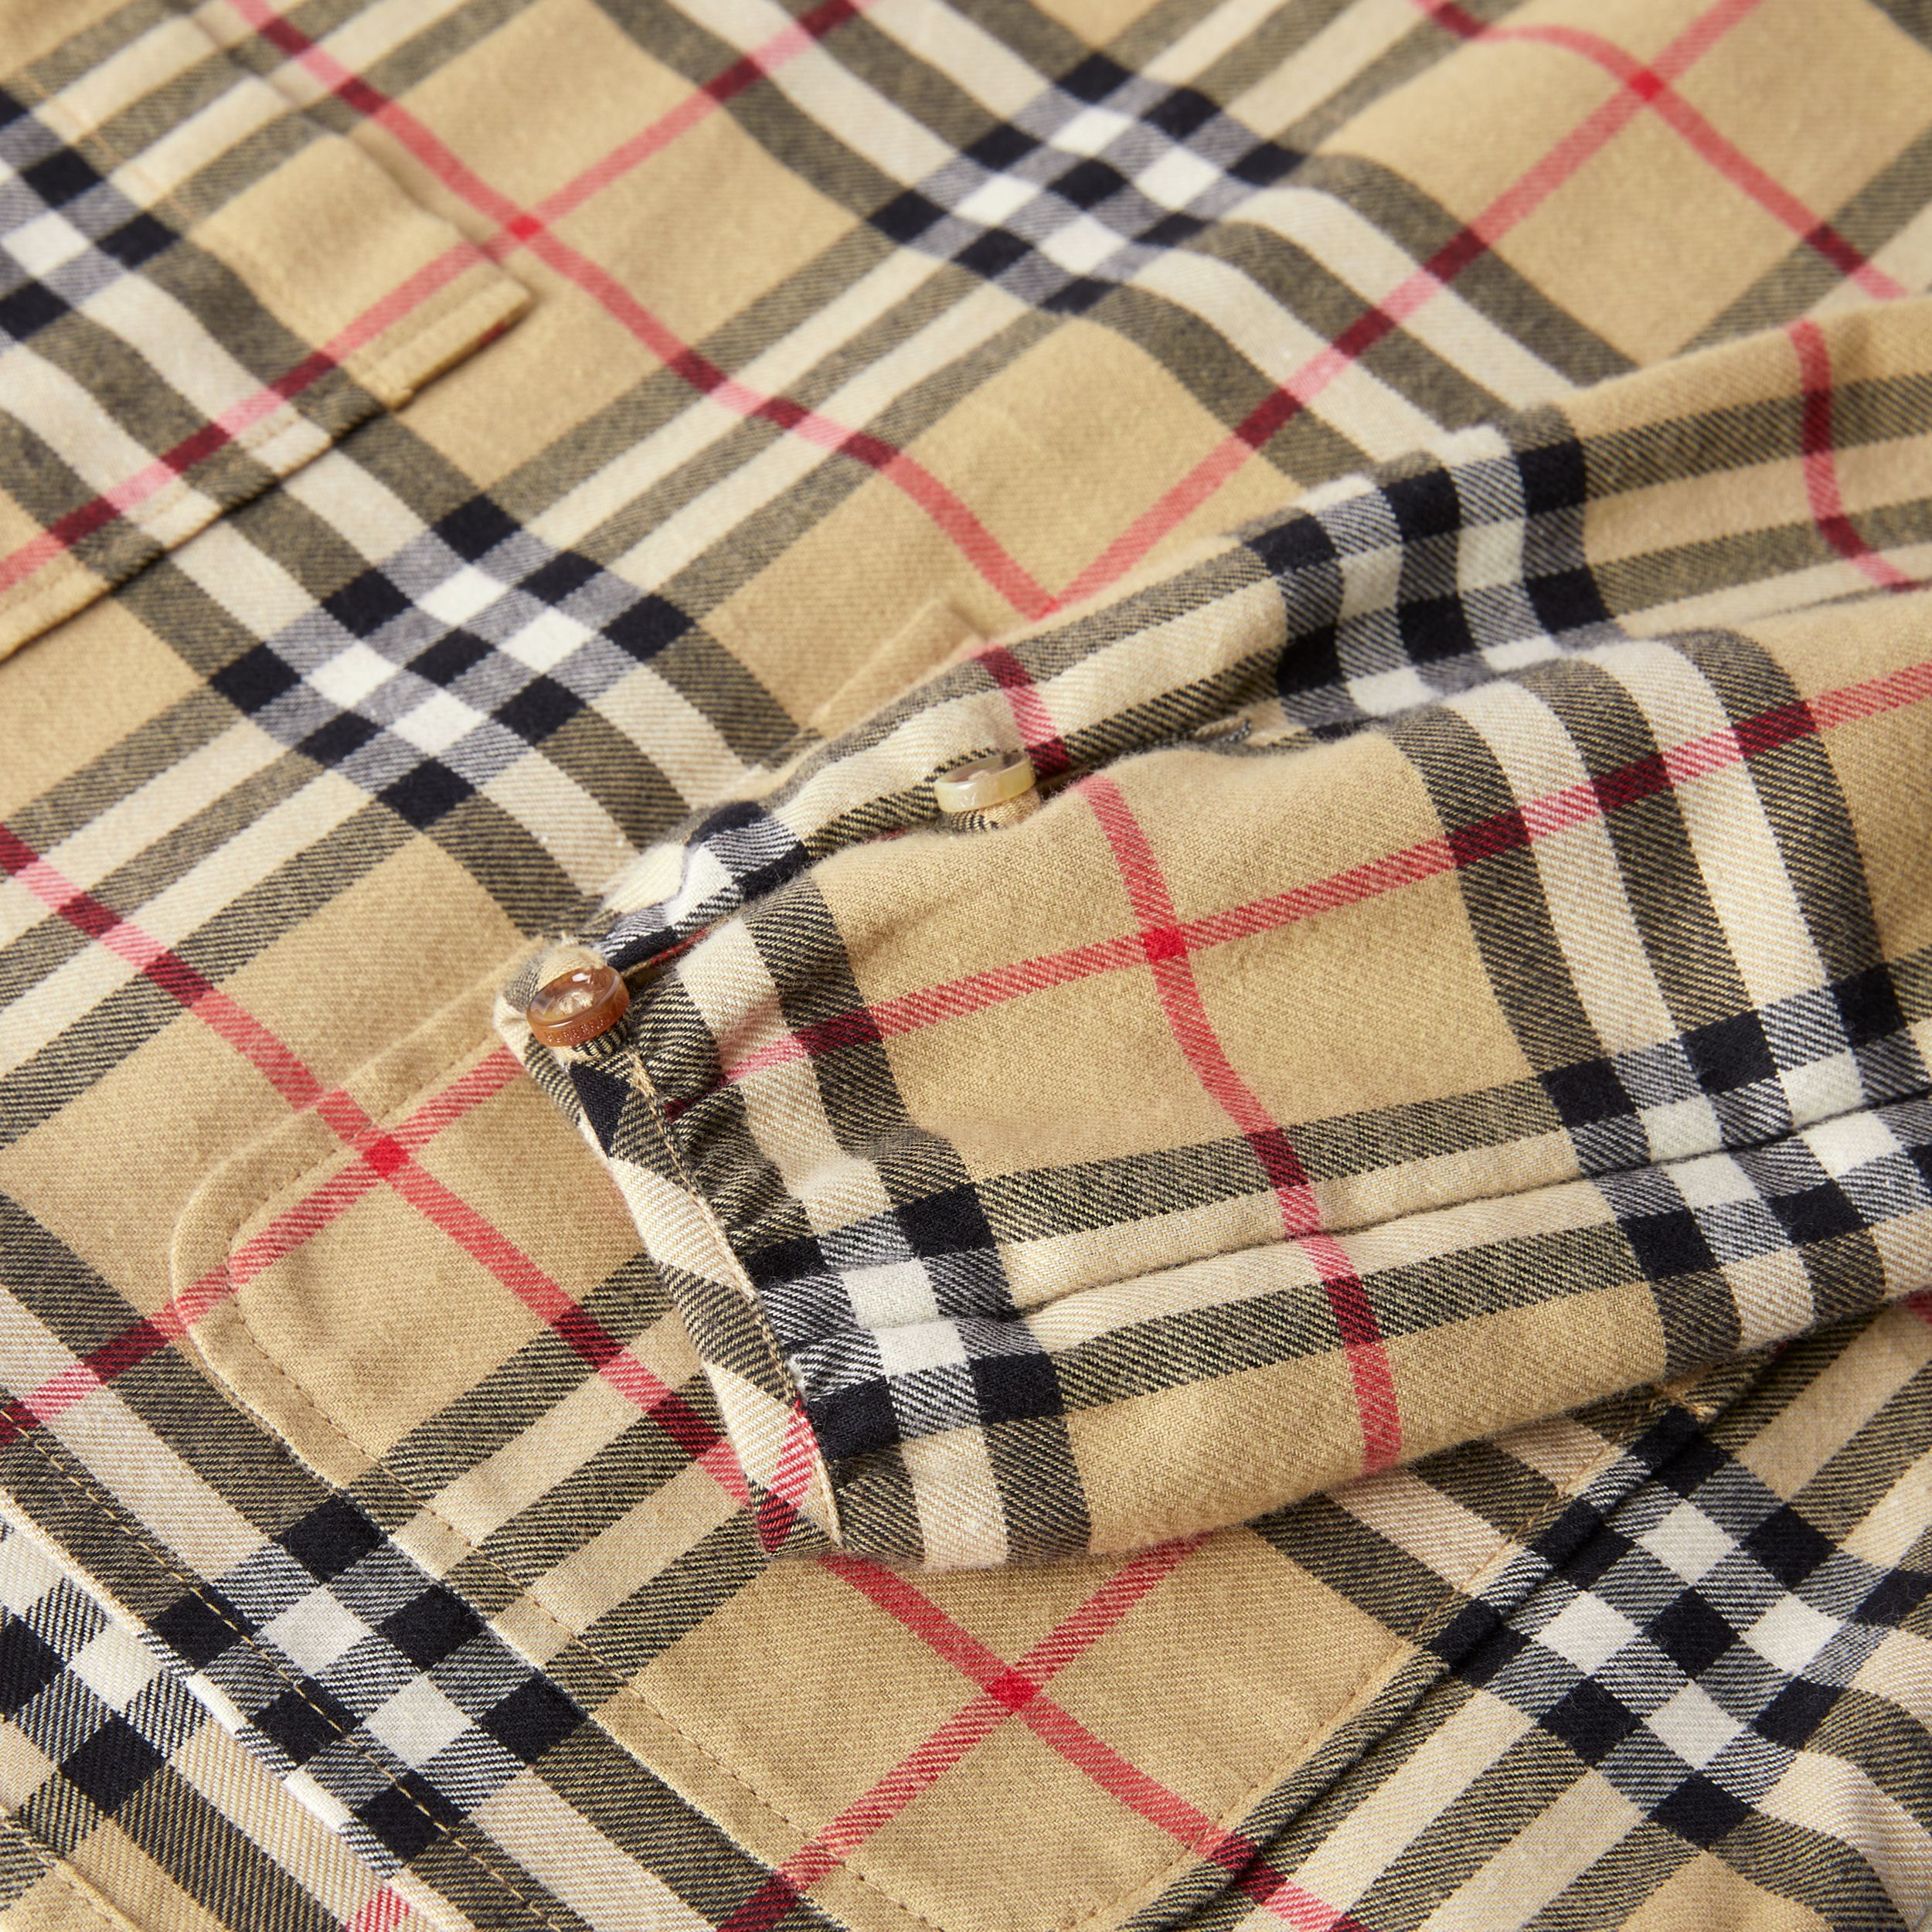 Peter Pan Collar Vintage Check Cotton Blouse | Burberry Singapore - 2